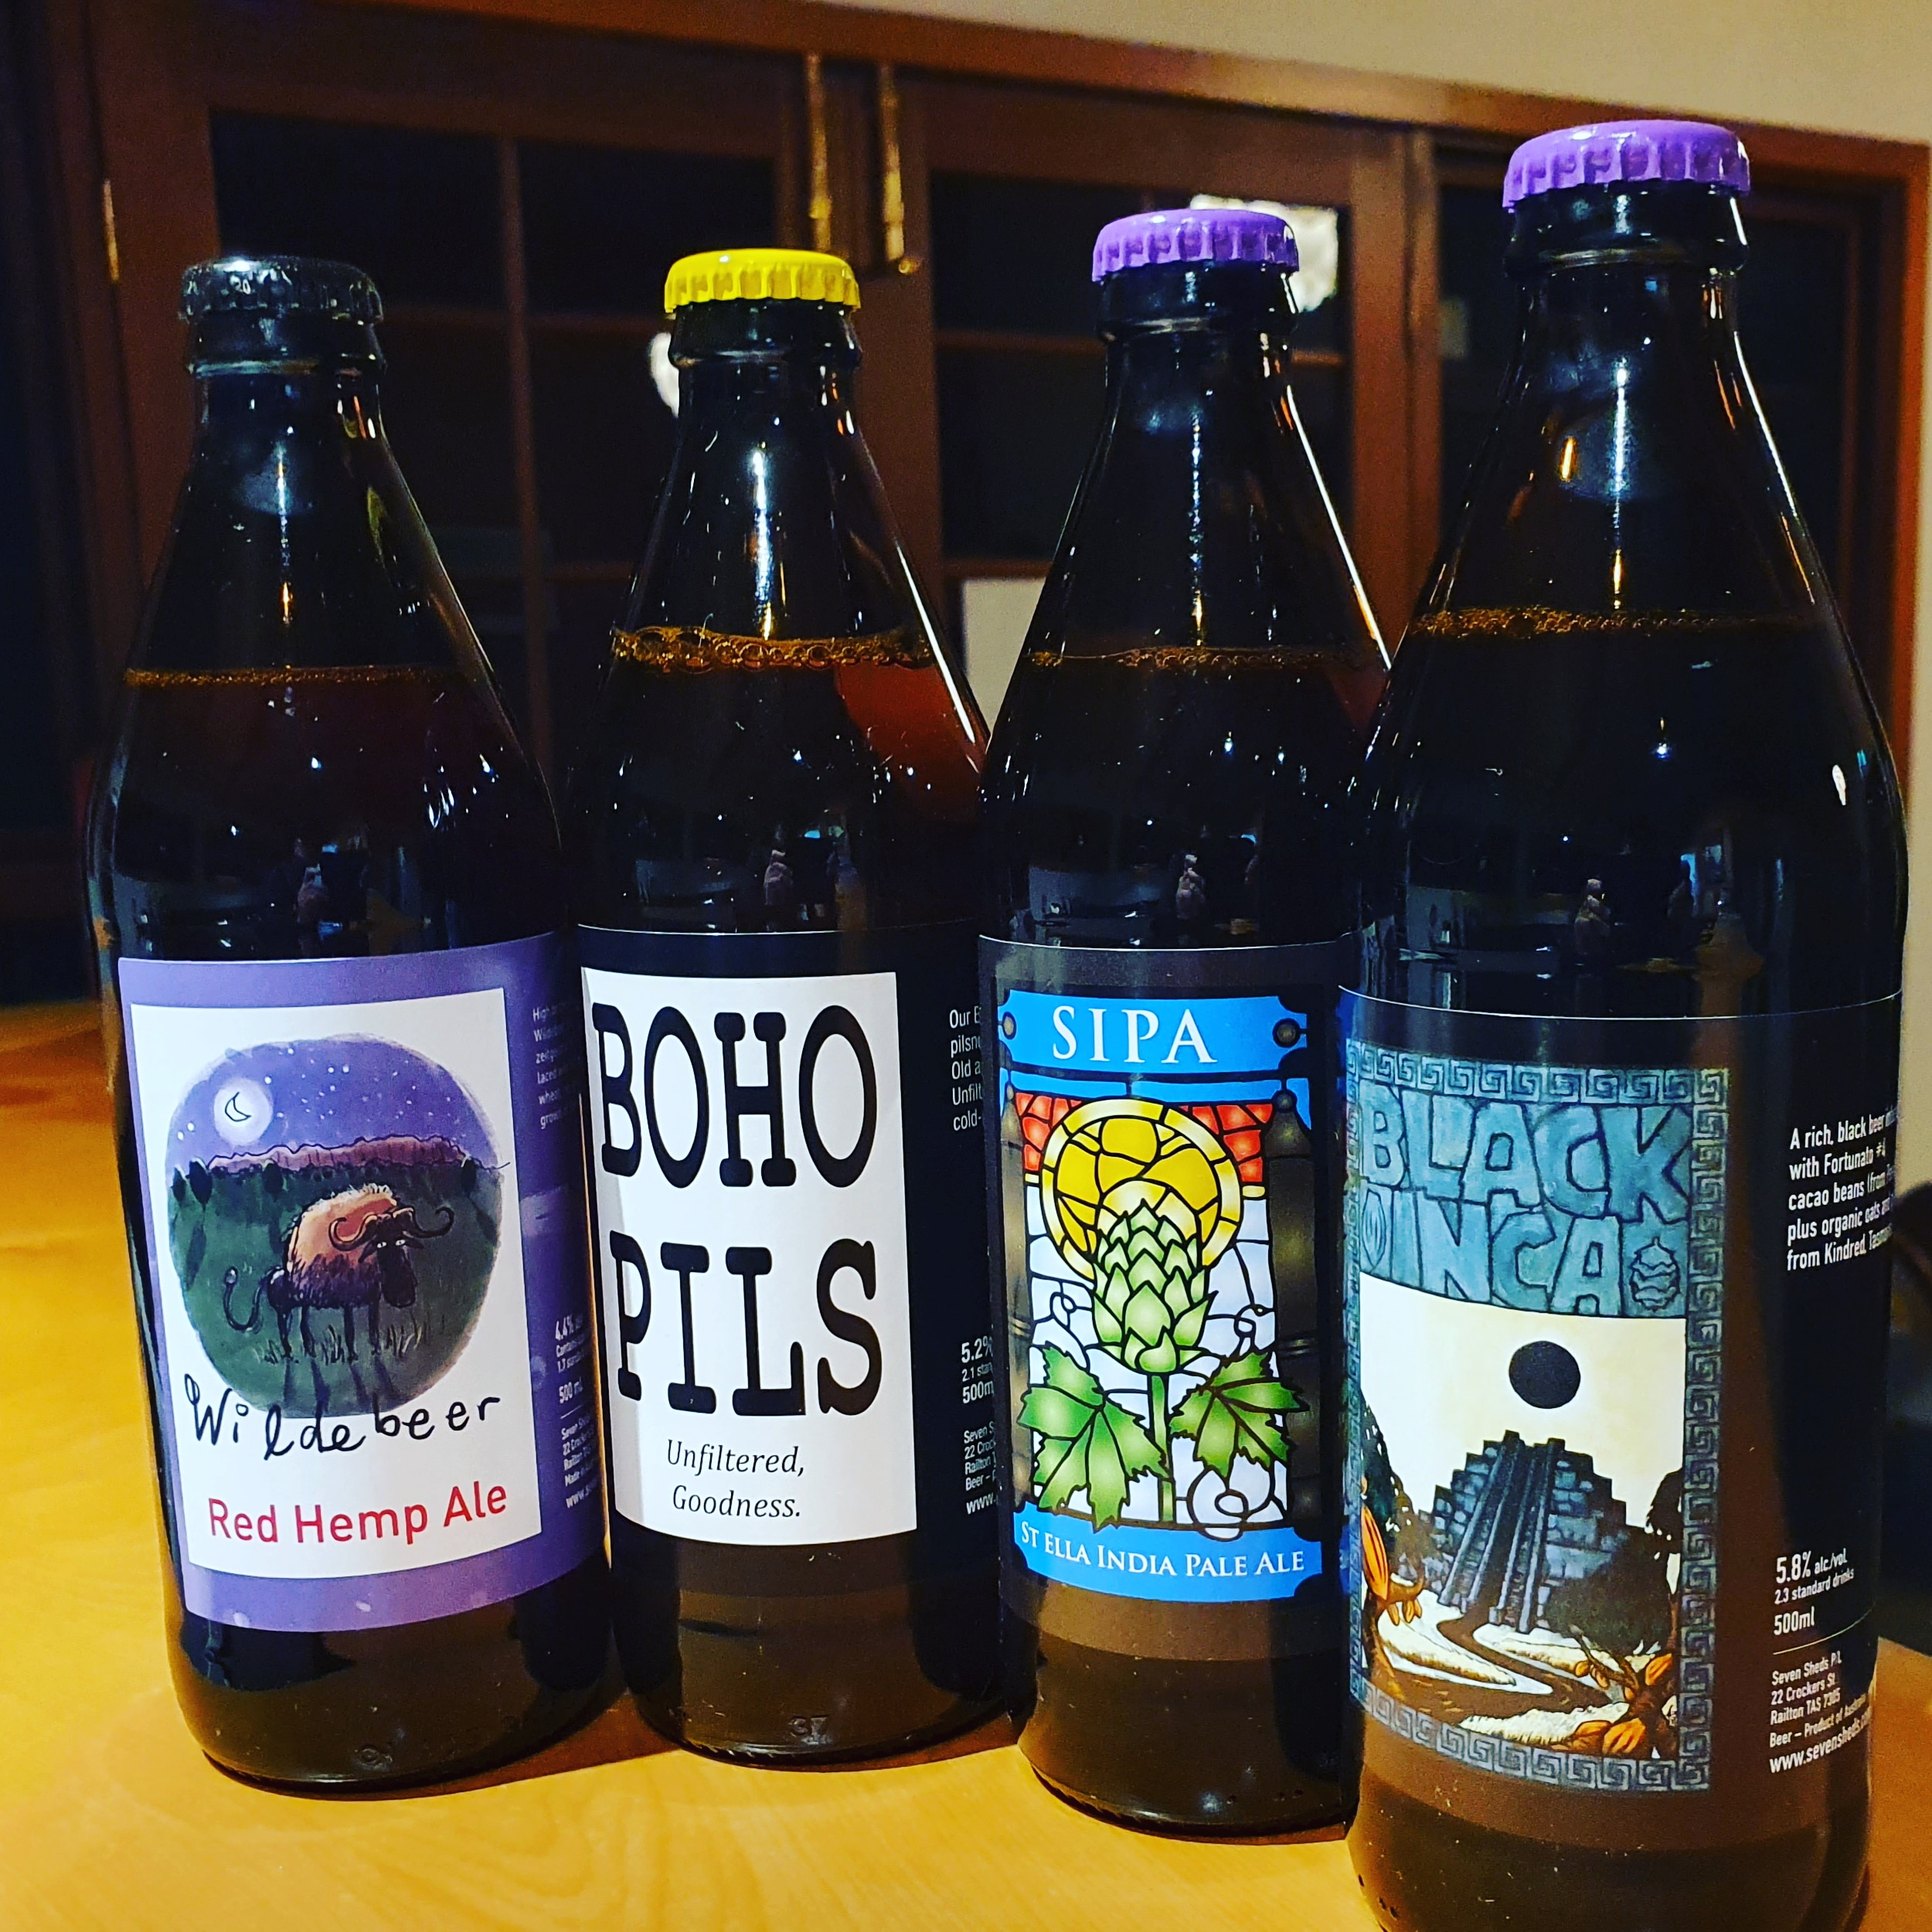 All Weather Mix beers in bottles